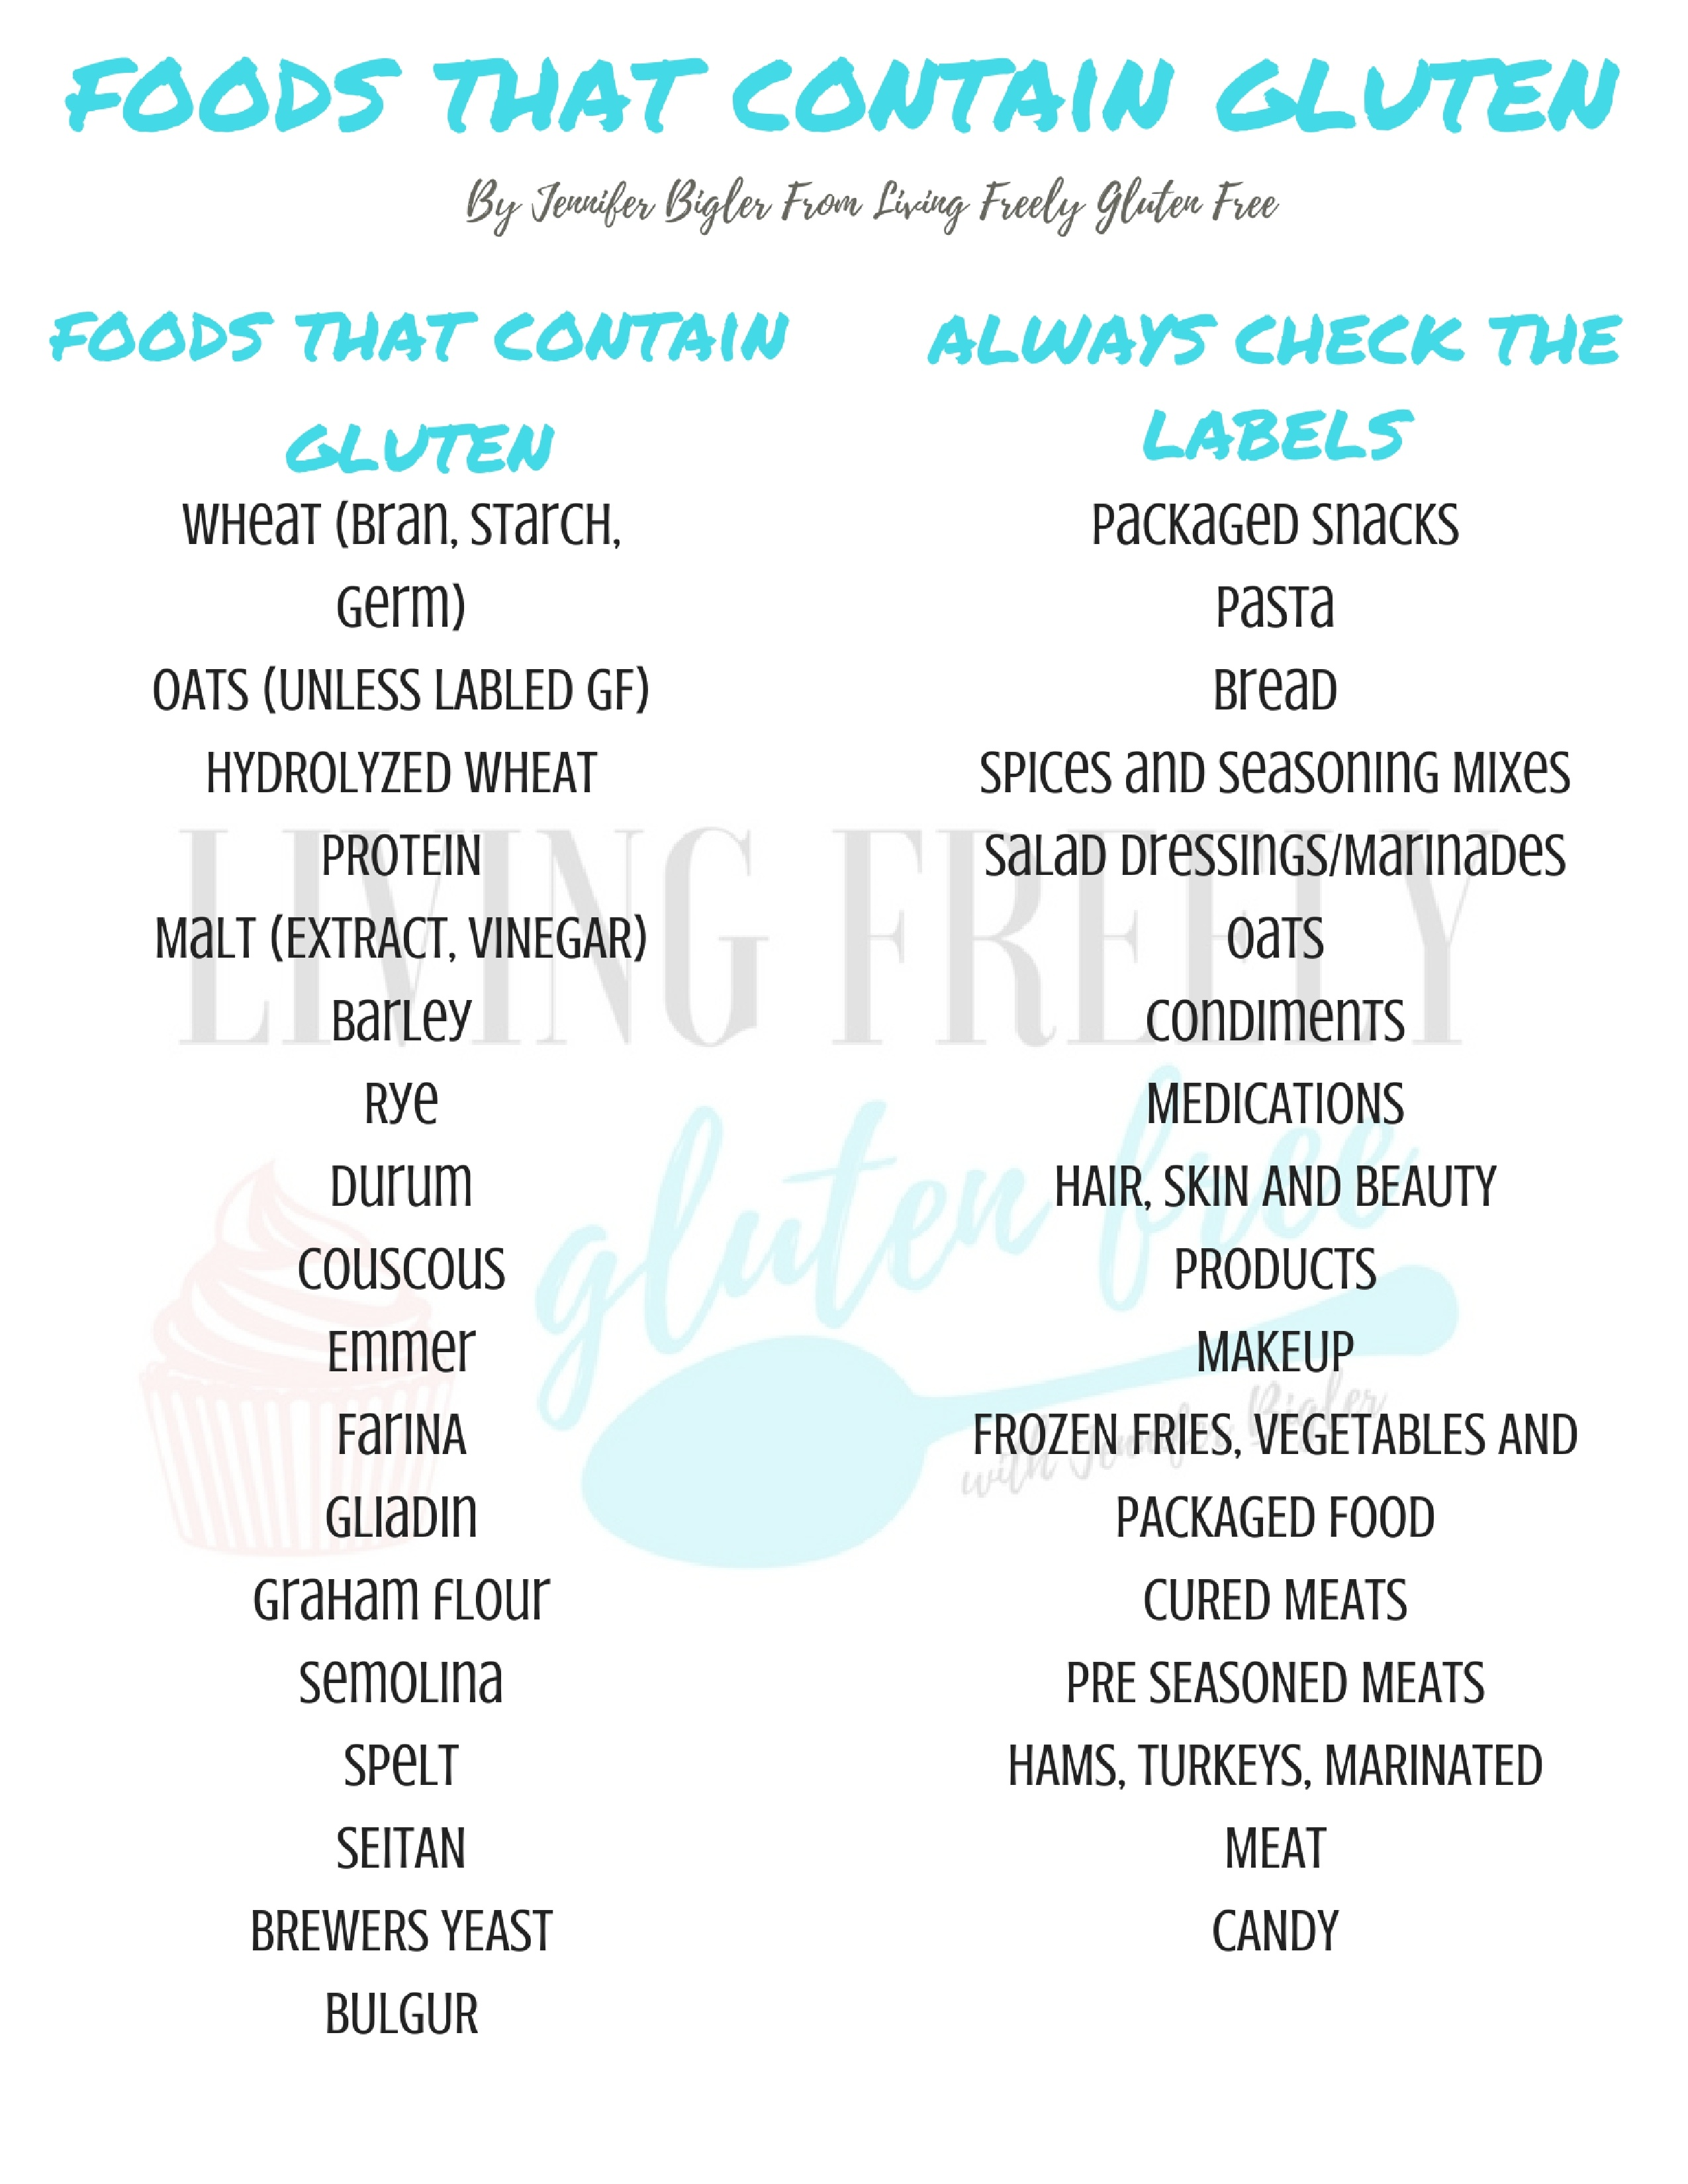 Foods That Contain Gluten and Foods That Always Need Labels